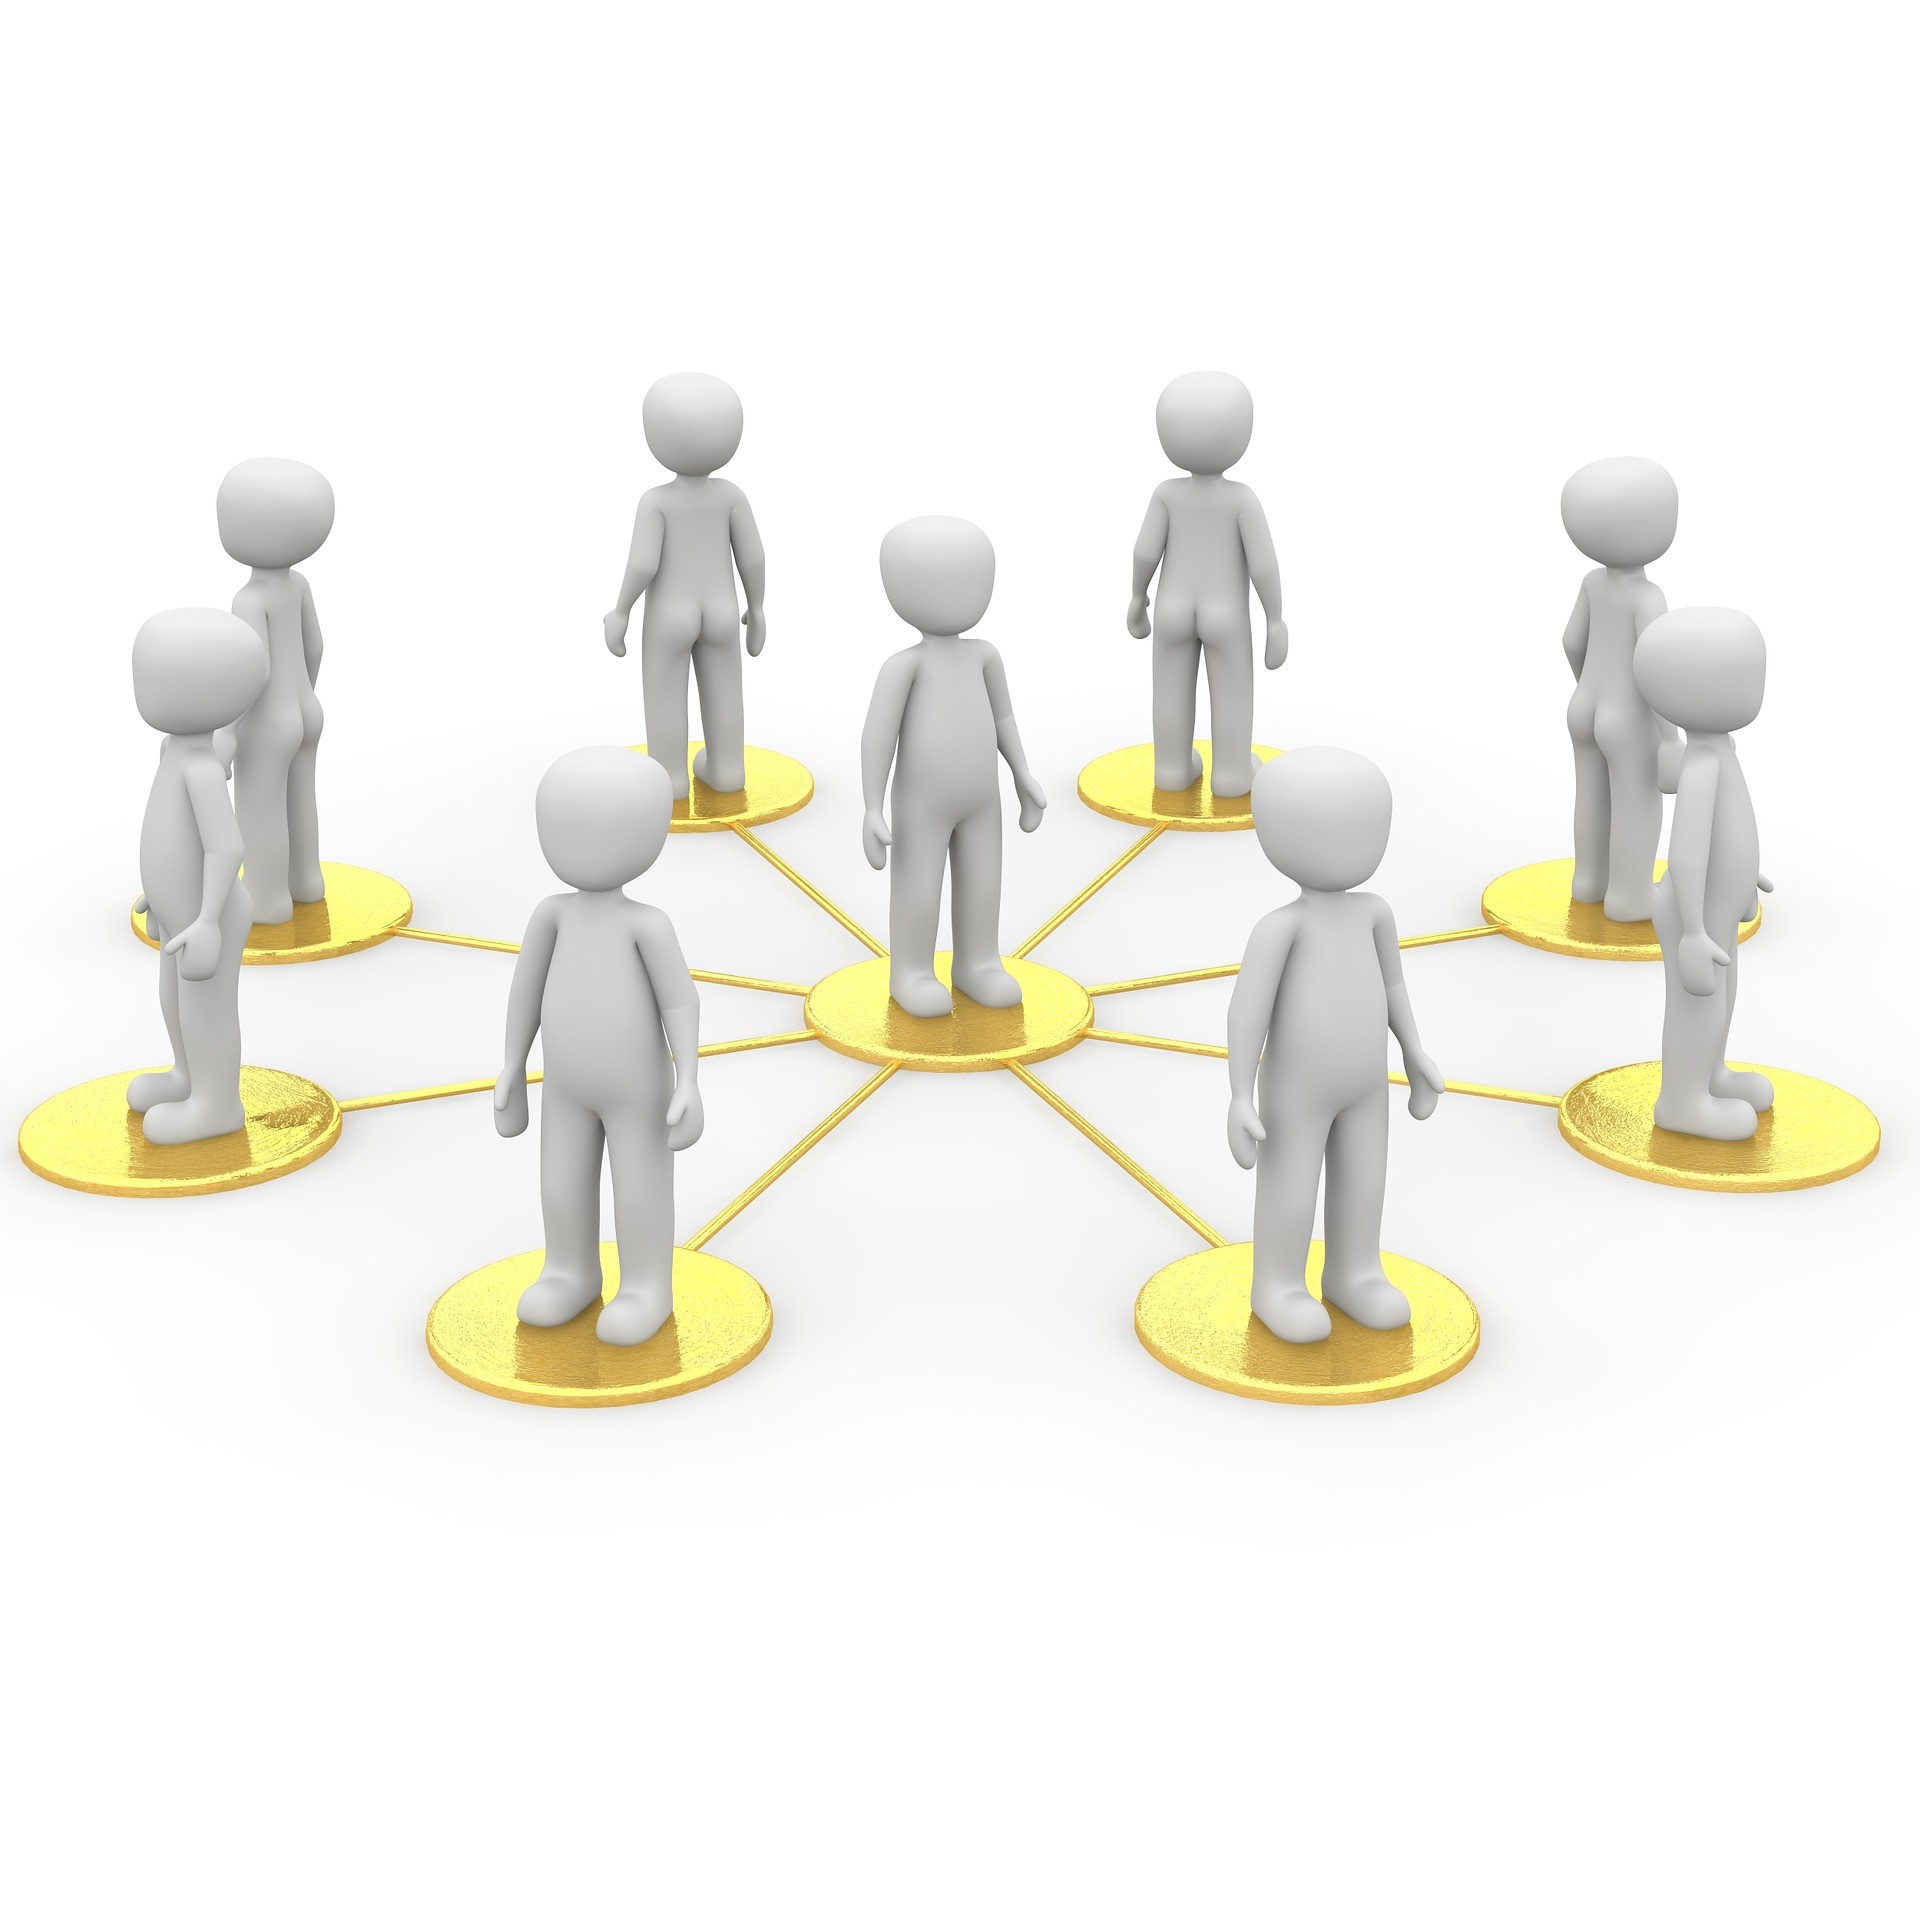 Effectively Gathering and Managing Information from your Rep Network